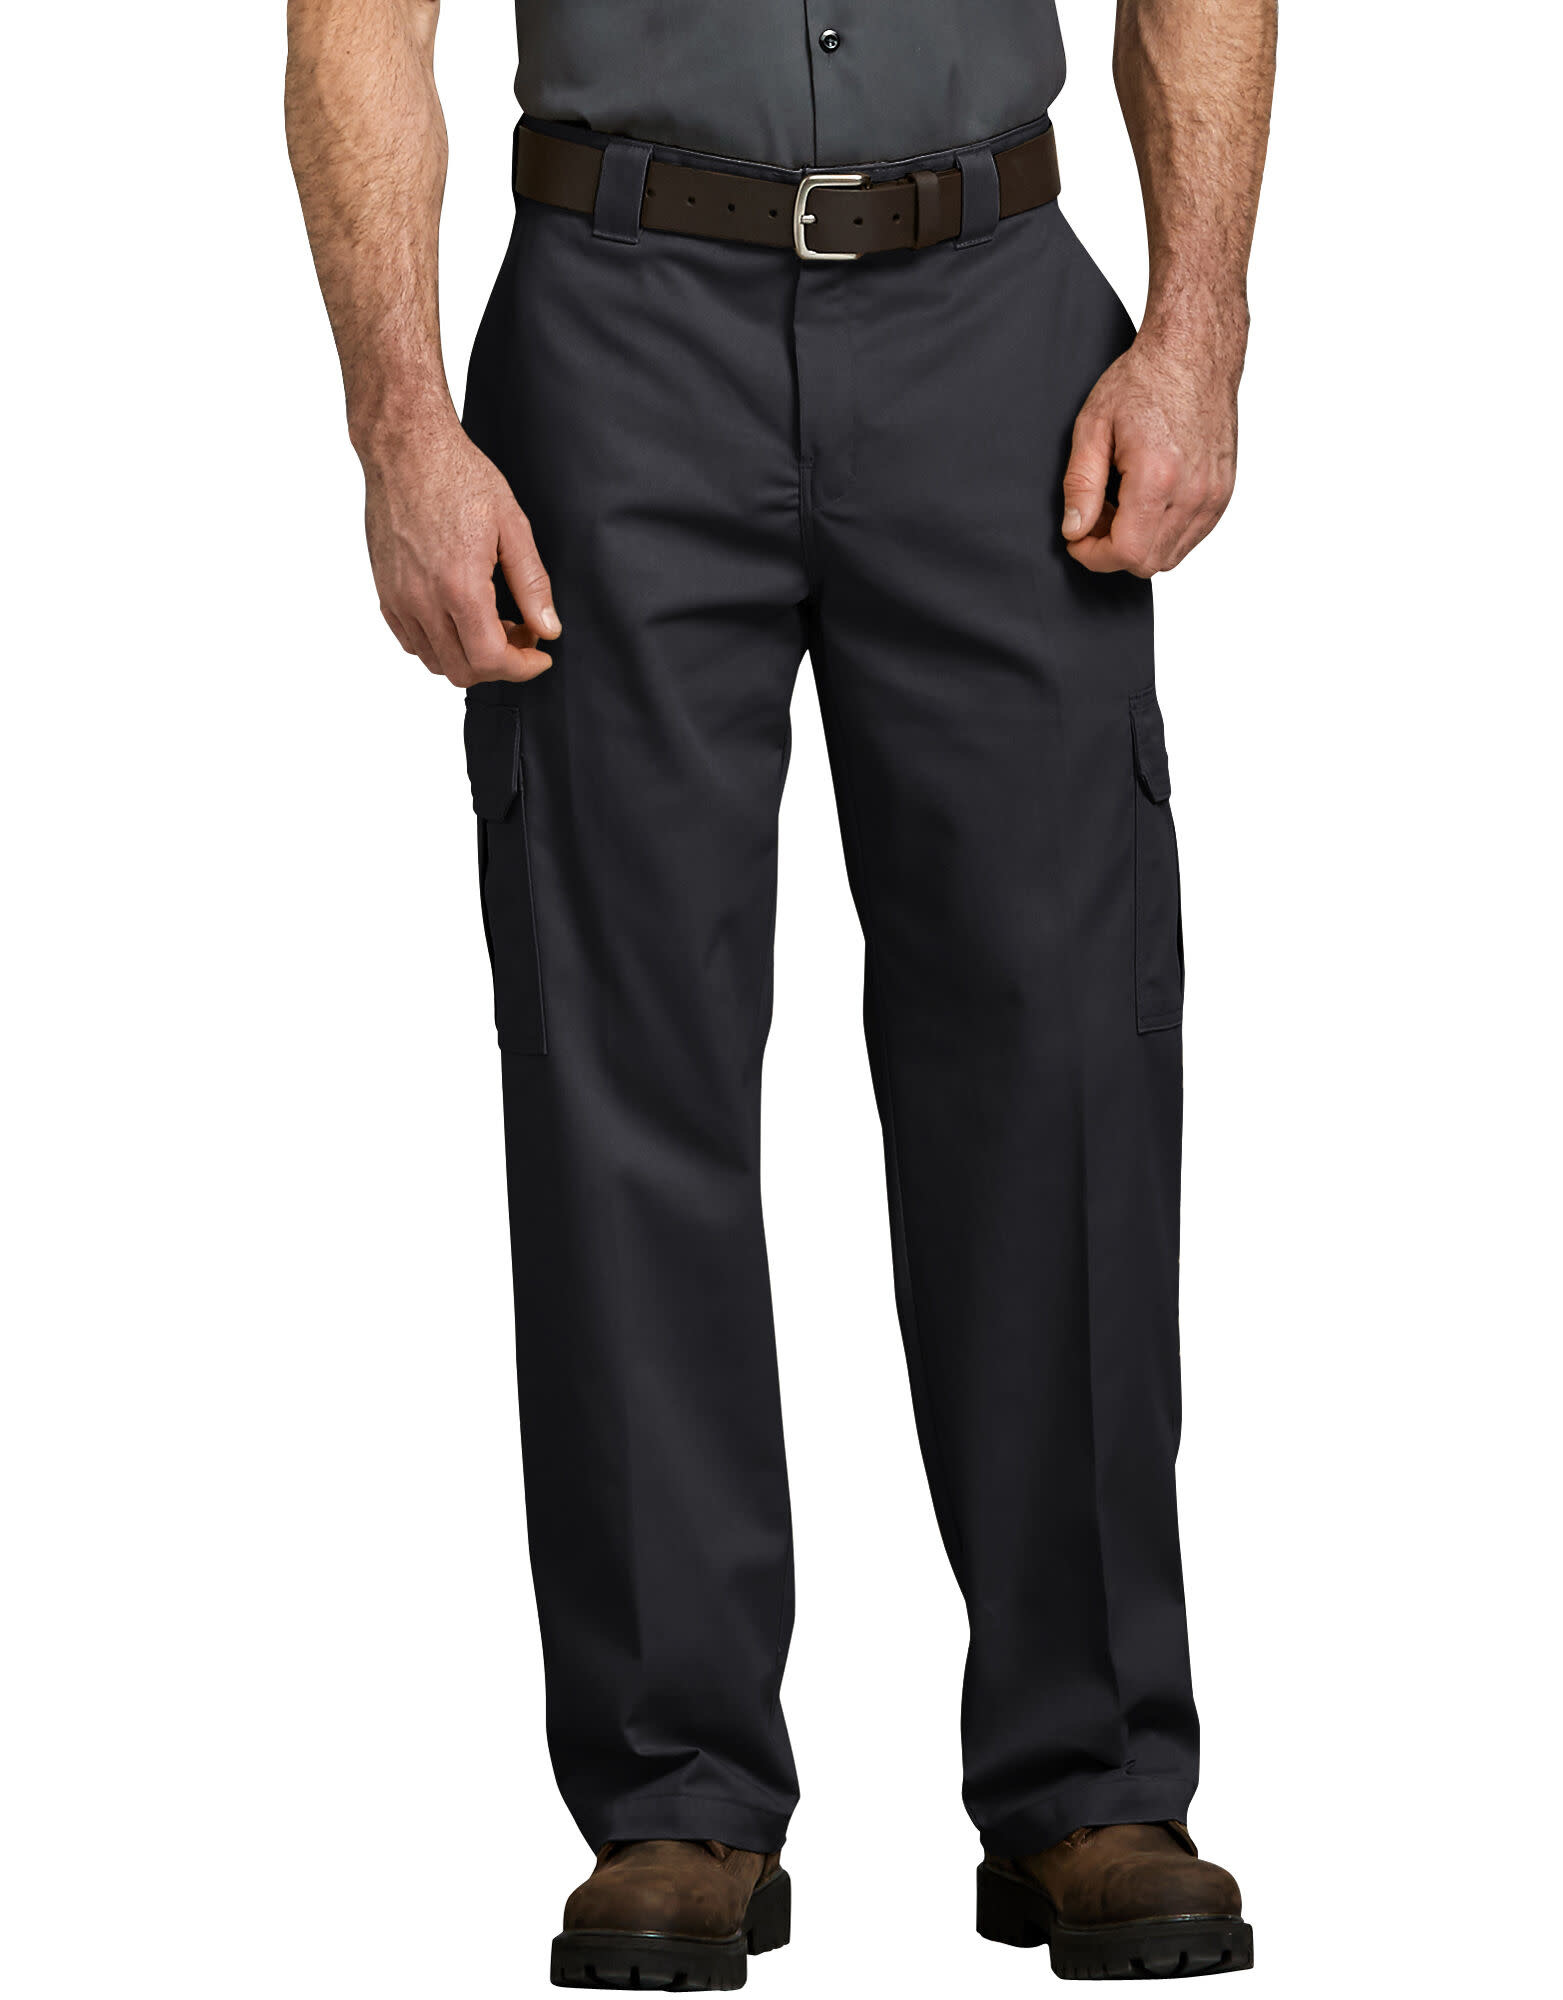 Dickies 598 Relaxed Fit Flex Cargo Pant Black